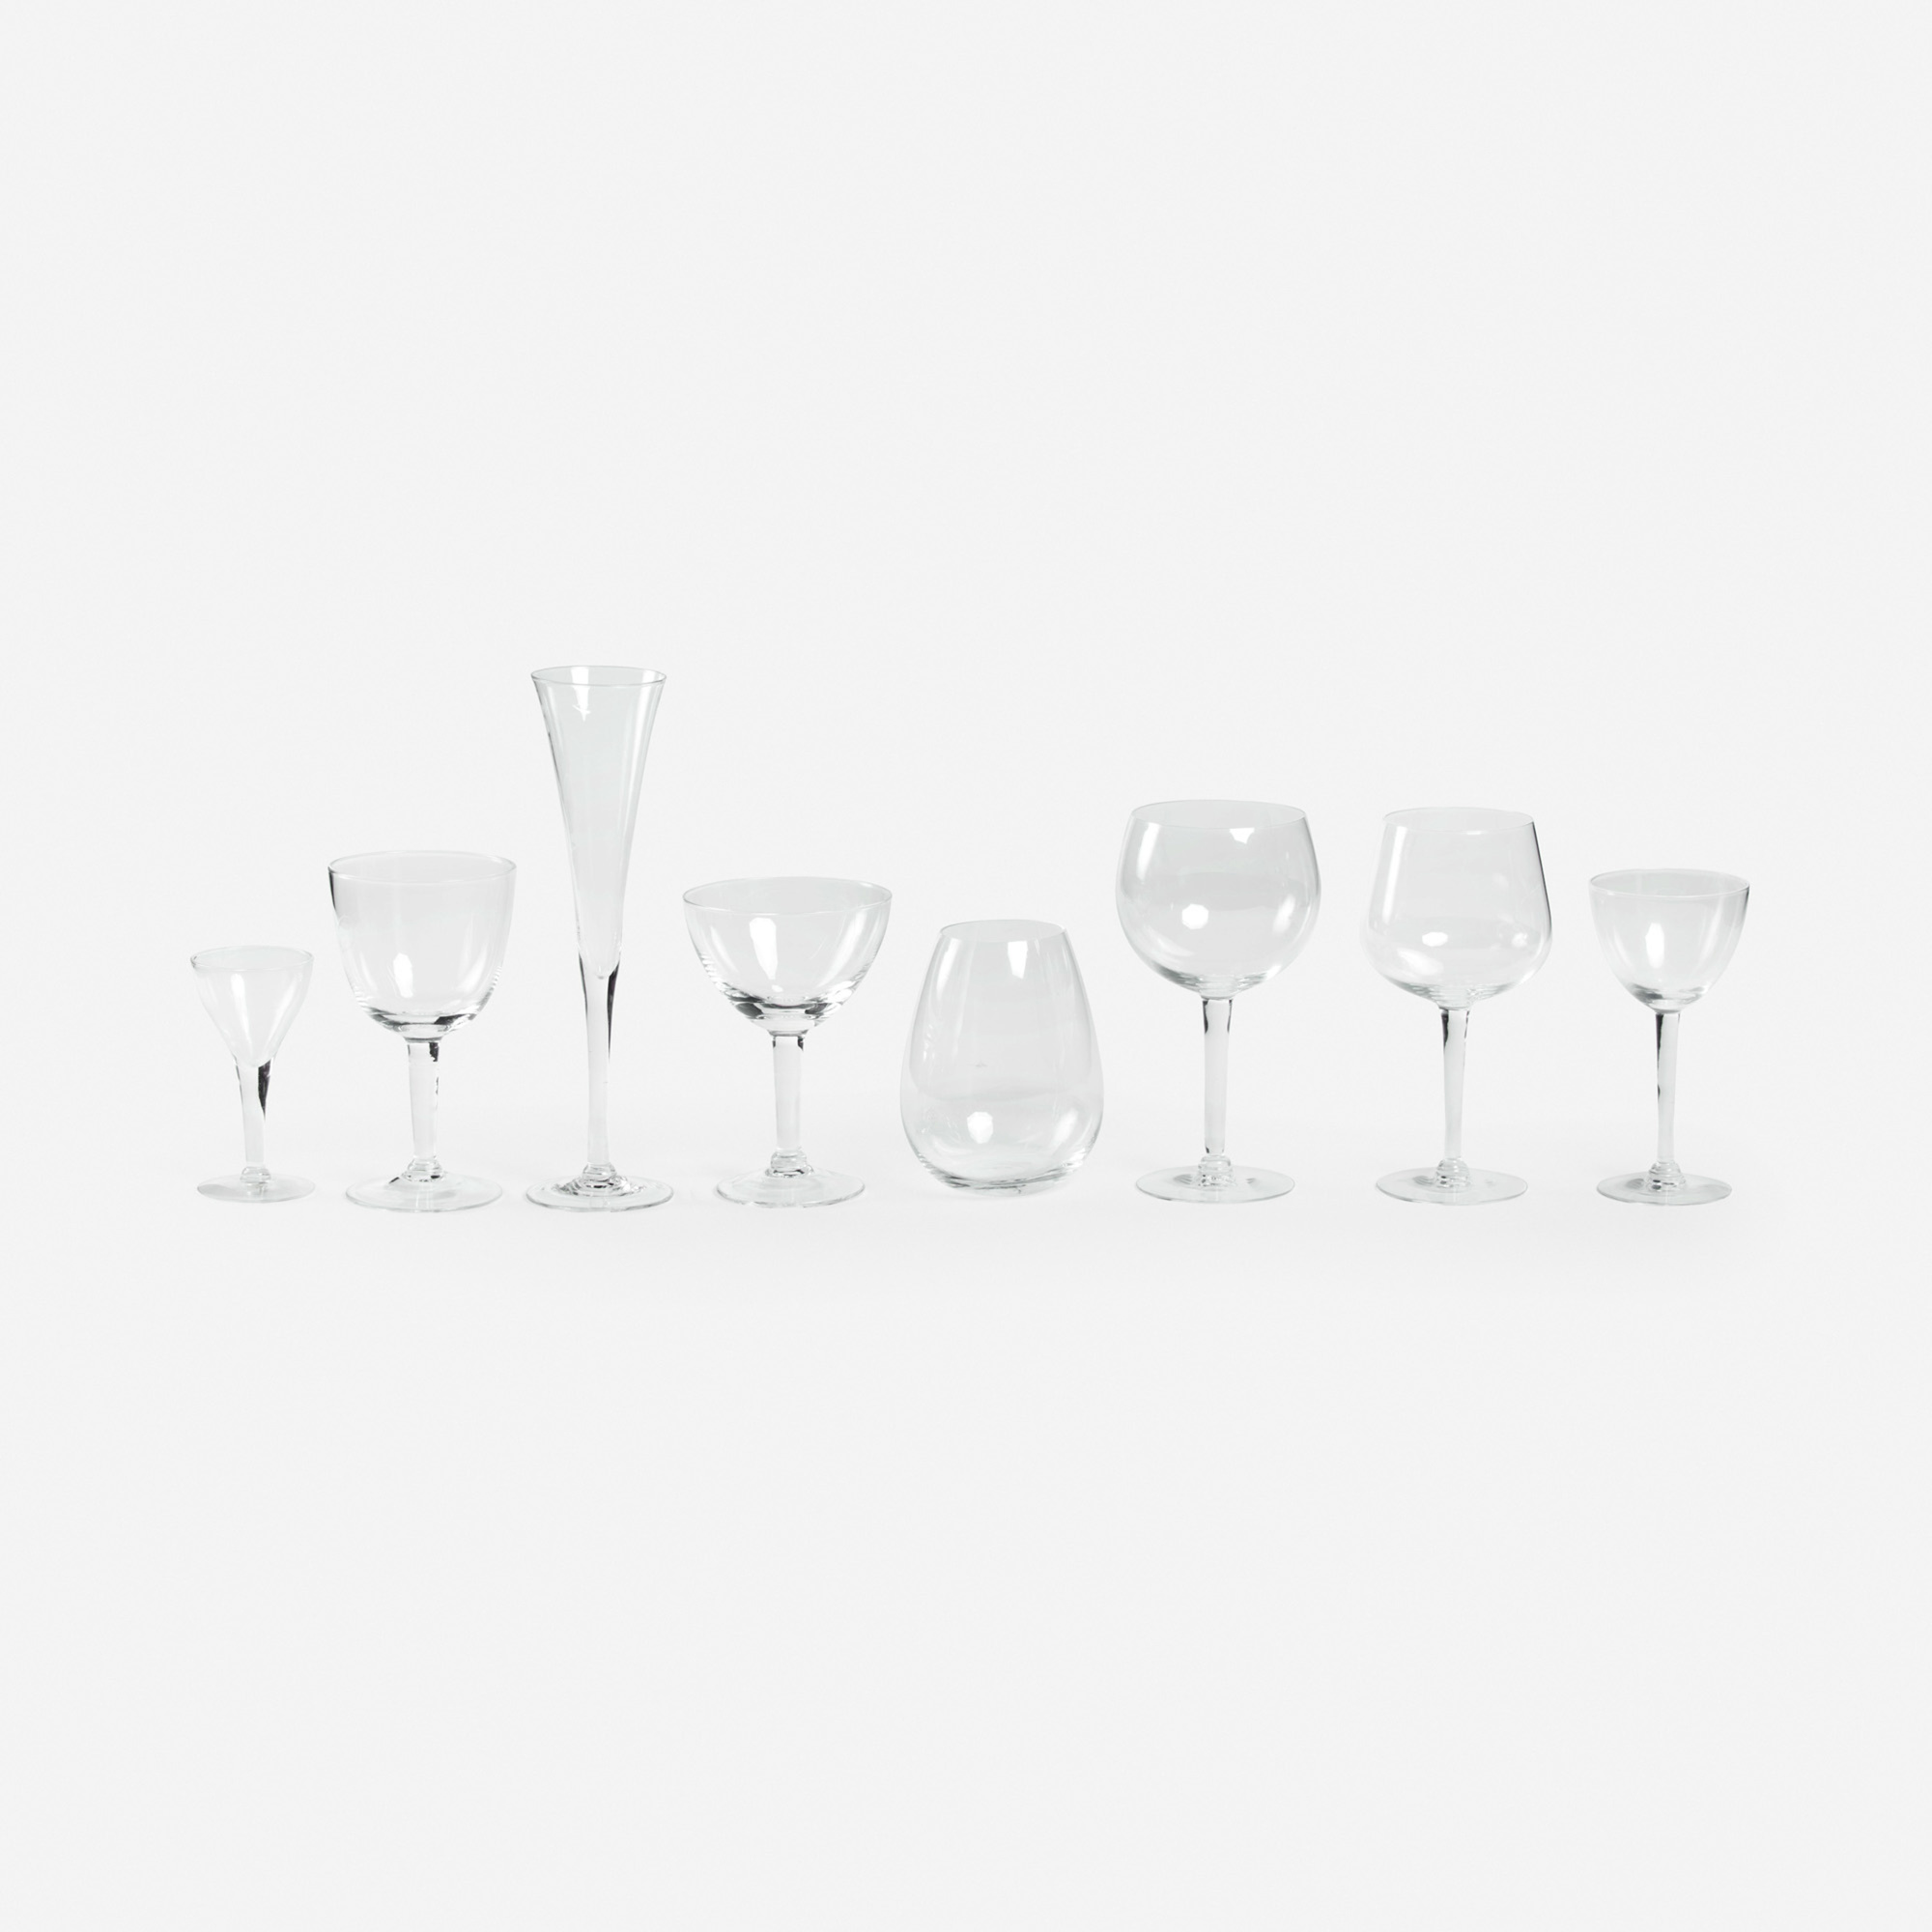 314: Garth and Ada Louise Huxtable / Stemware Collection from The Four Seasons, service for four (1 of 1)